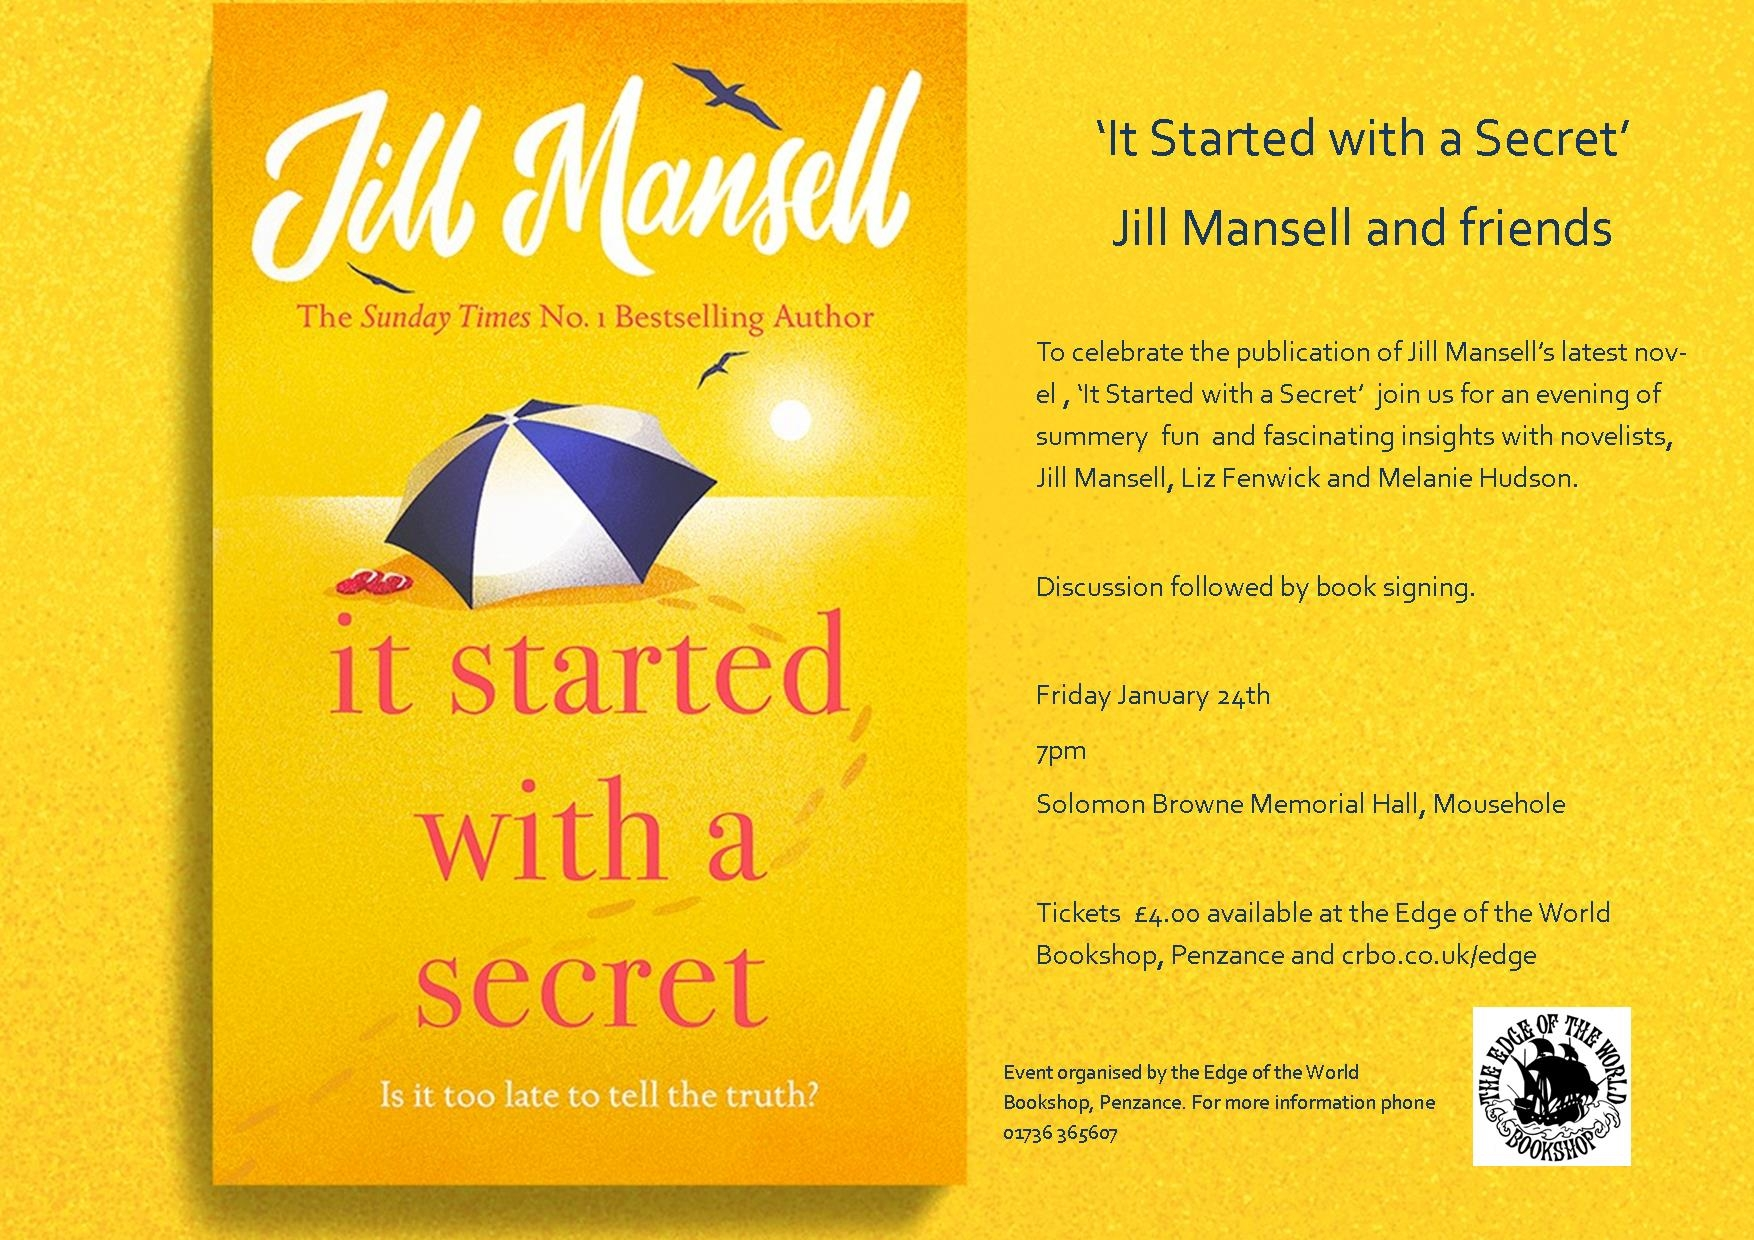 Bestselling author Jill Mansell and panel of novelists